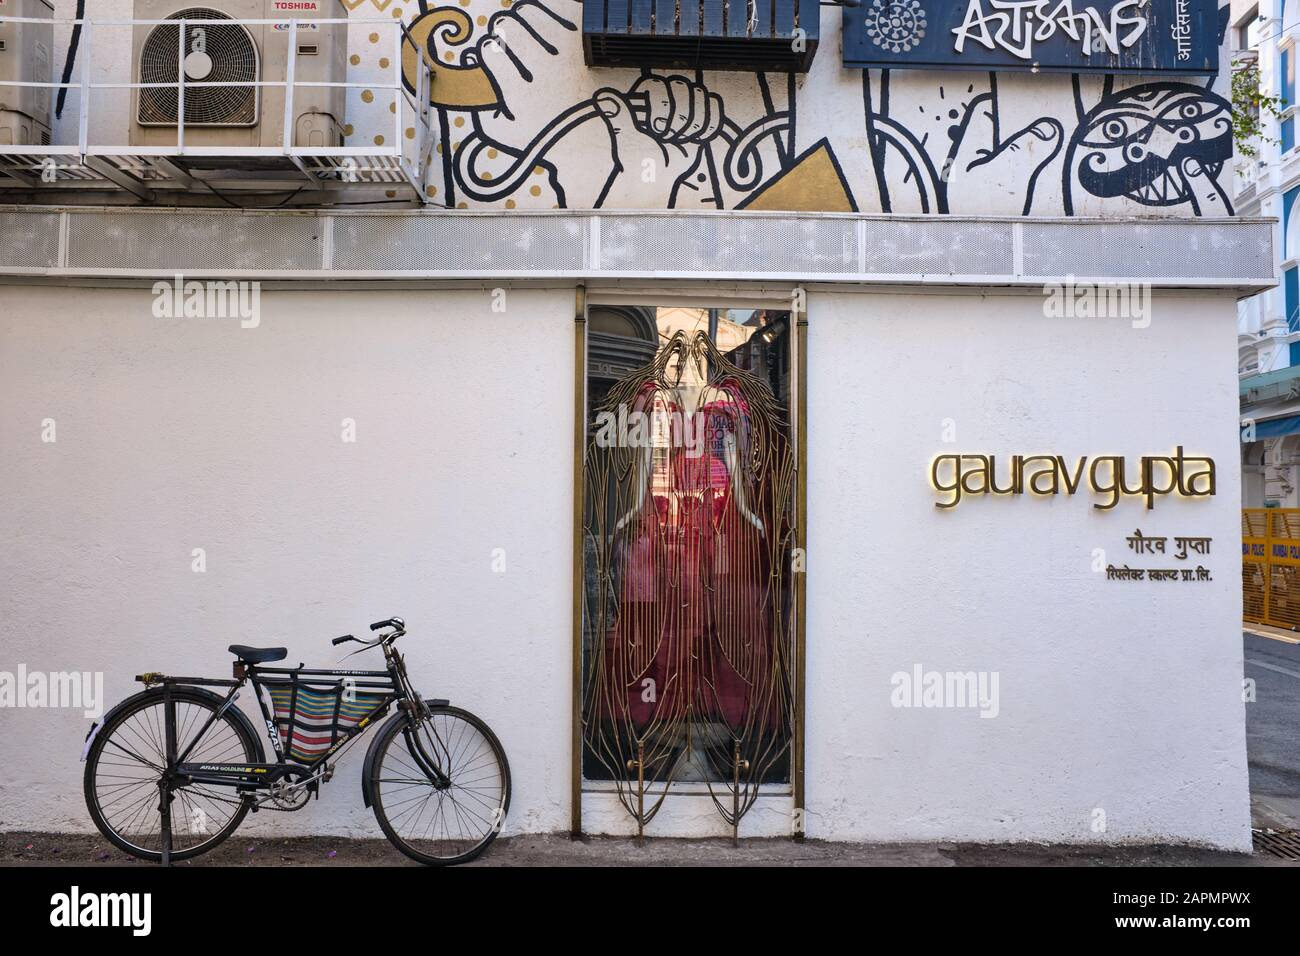 The Facade Of A Fashion Boutique Run By Indian Fashion Designer Gaurav Gupta In Kala Ghoda Fort Mumbai An Area With Numerous Boutiques And Cafes Stock Photo Alamy